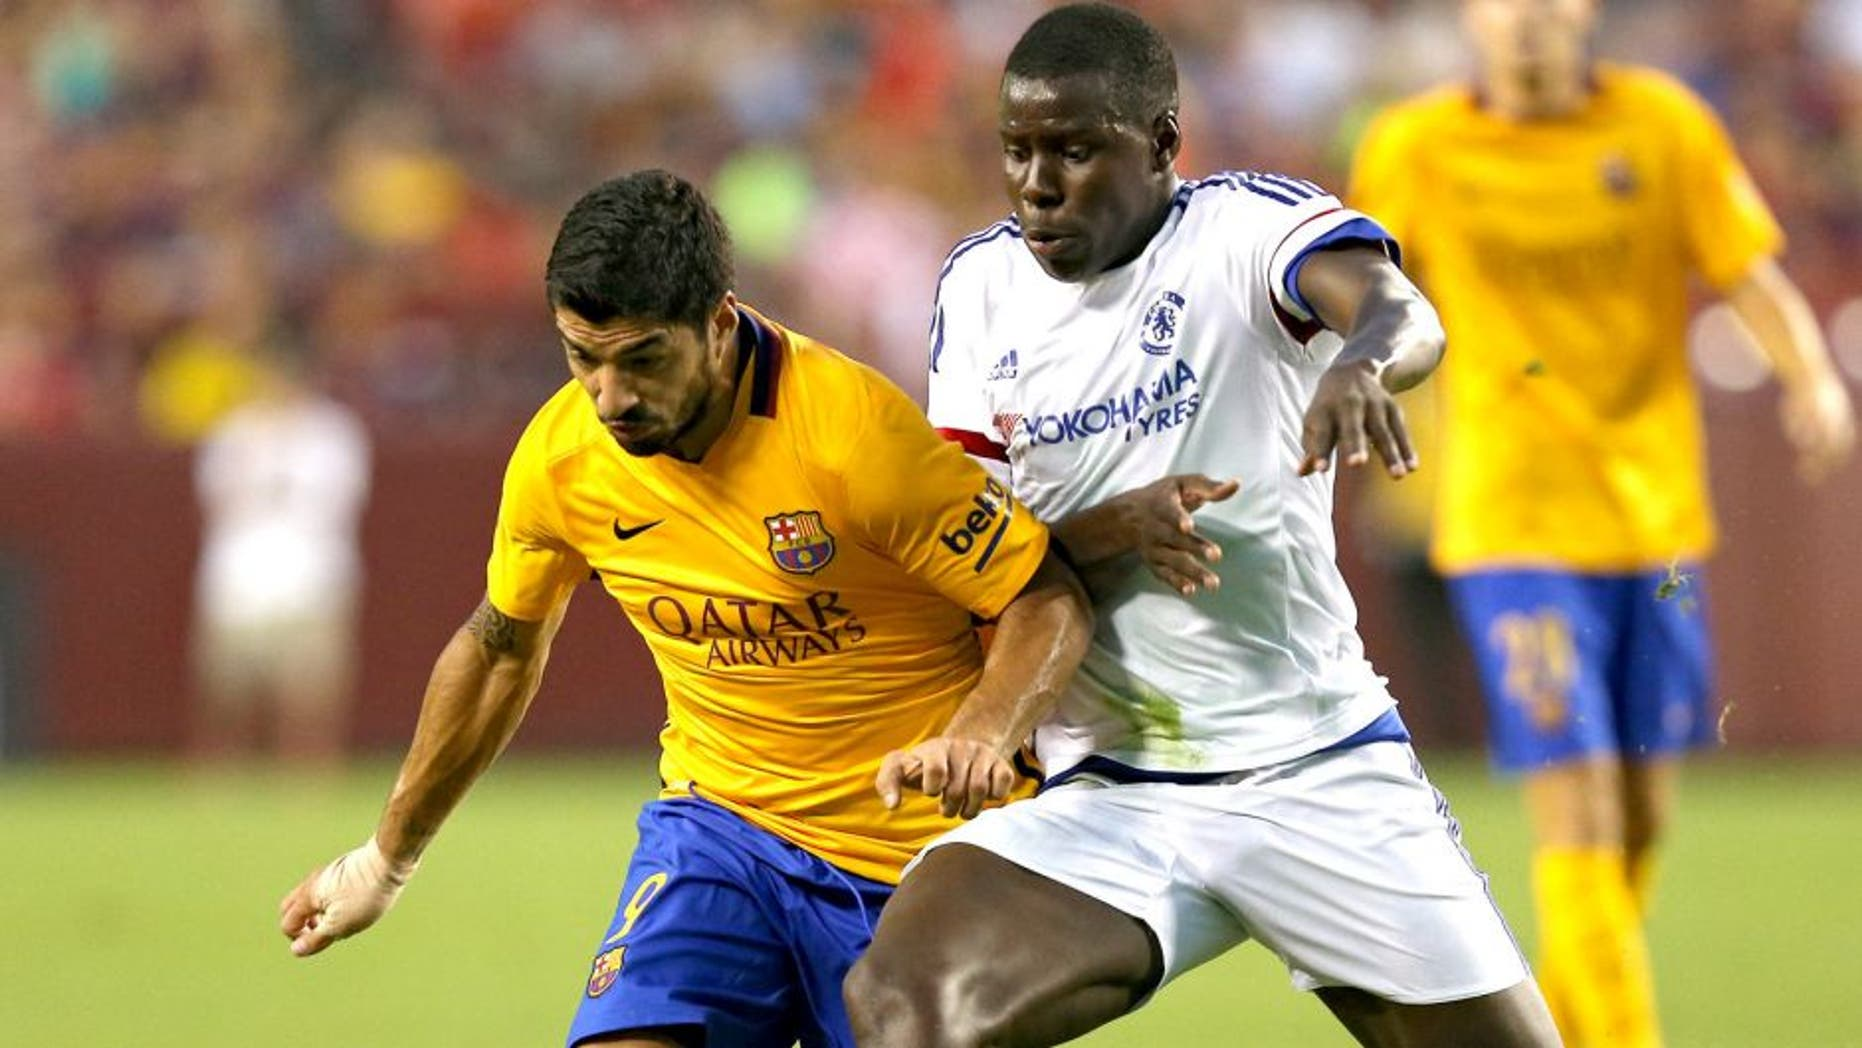 LANDOVER, MD - JULY 28: Luis Suarez #9 of Barcelona battles with Kurt Zouma #5 of Chelsea in the first half during the International Champions Cup North America at FedExField on July 28, 2015 in Landover, Maryland. (Photo by Patrick Smith/Getty Images)